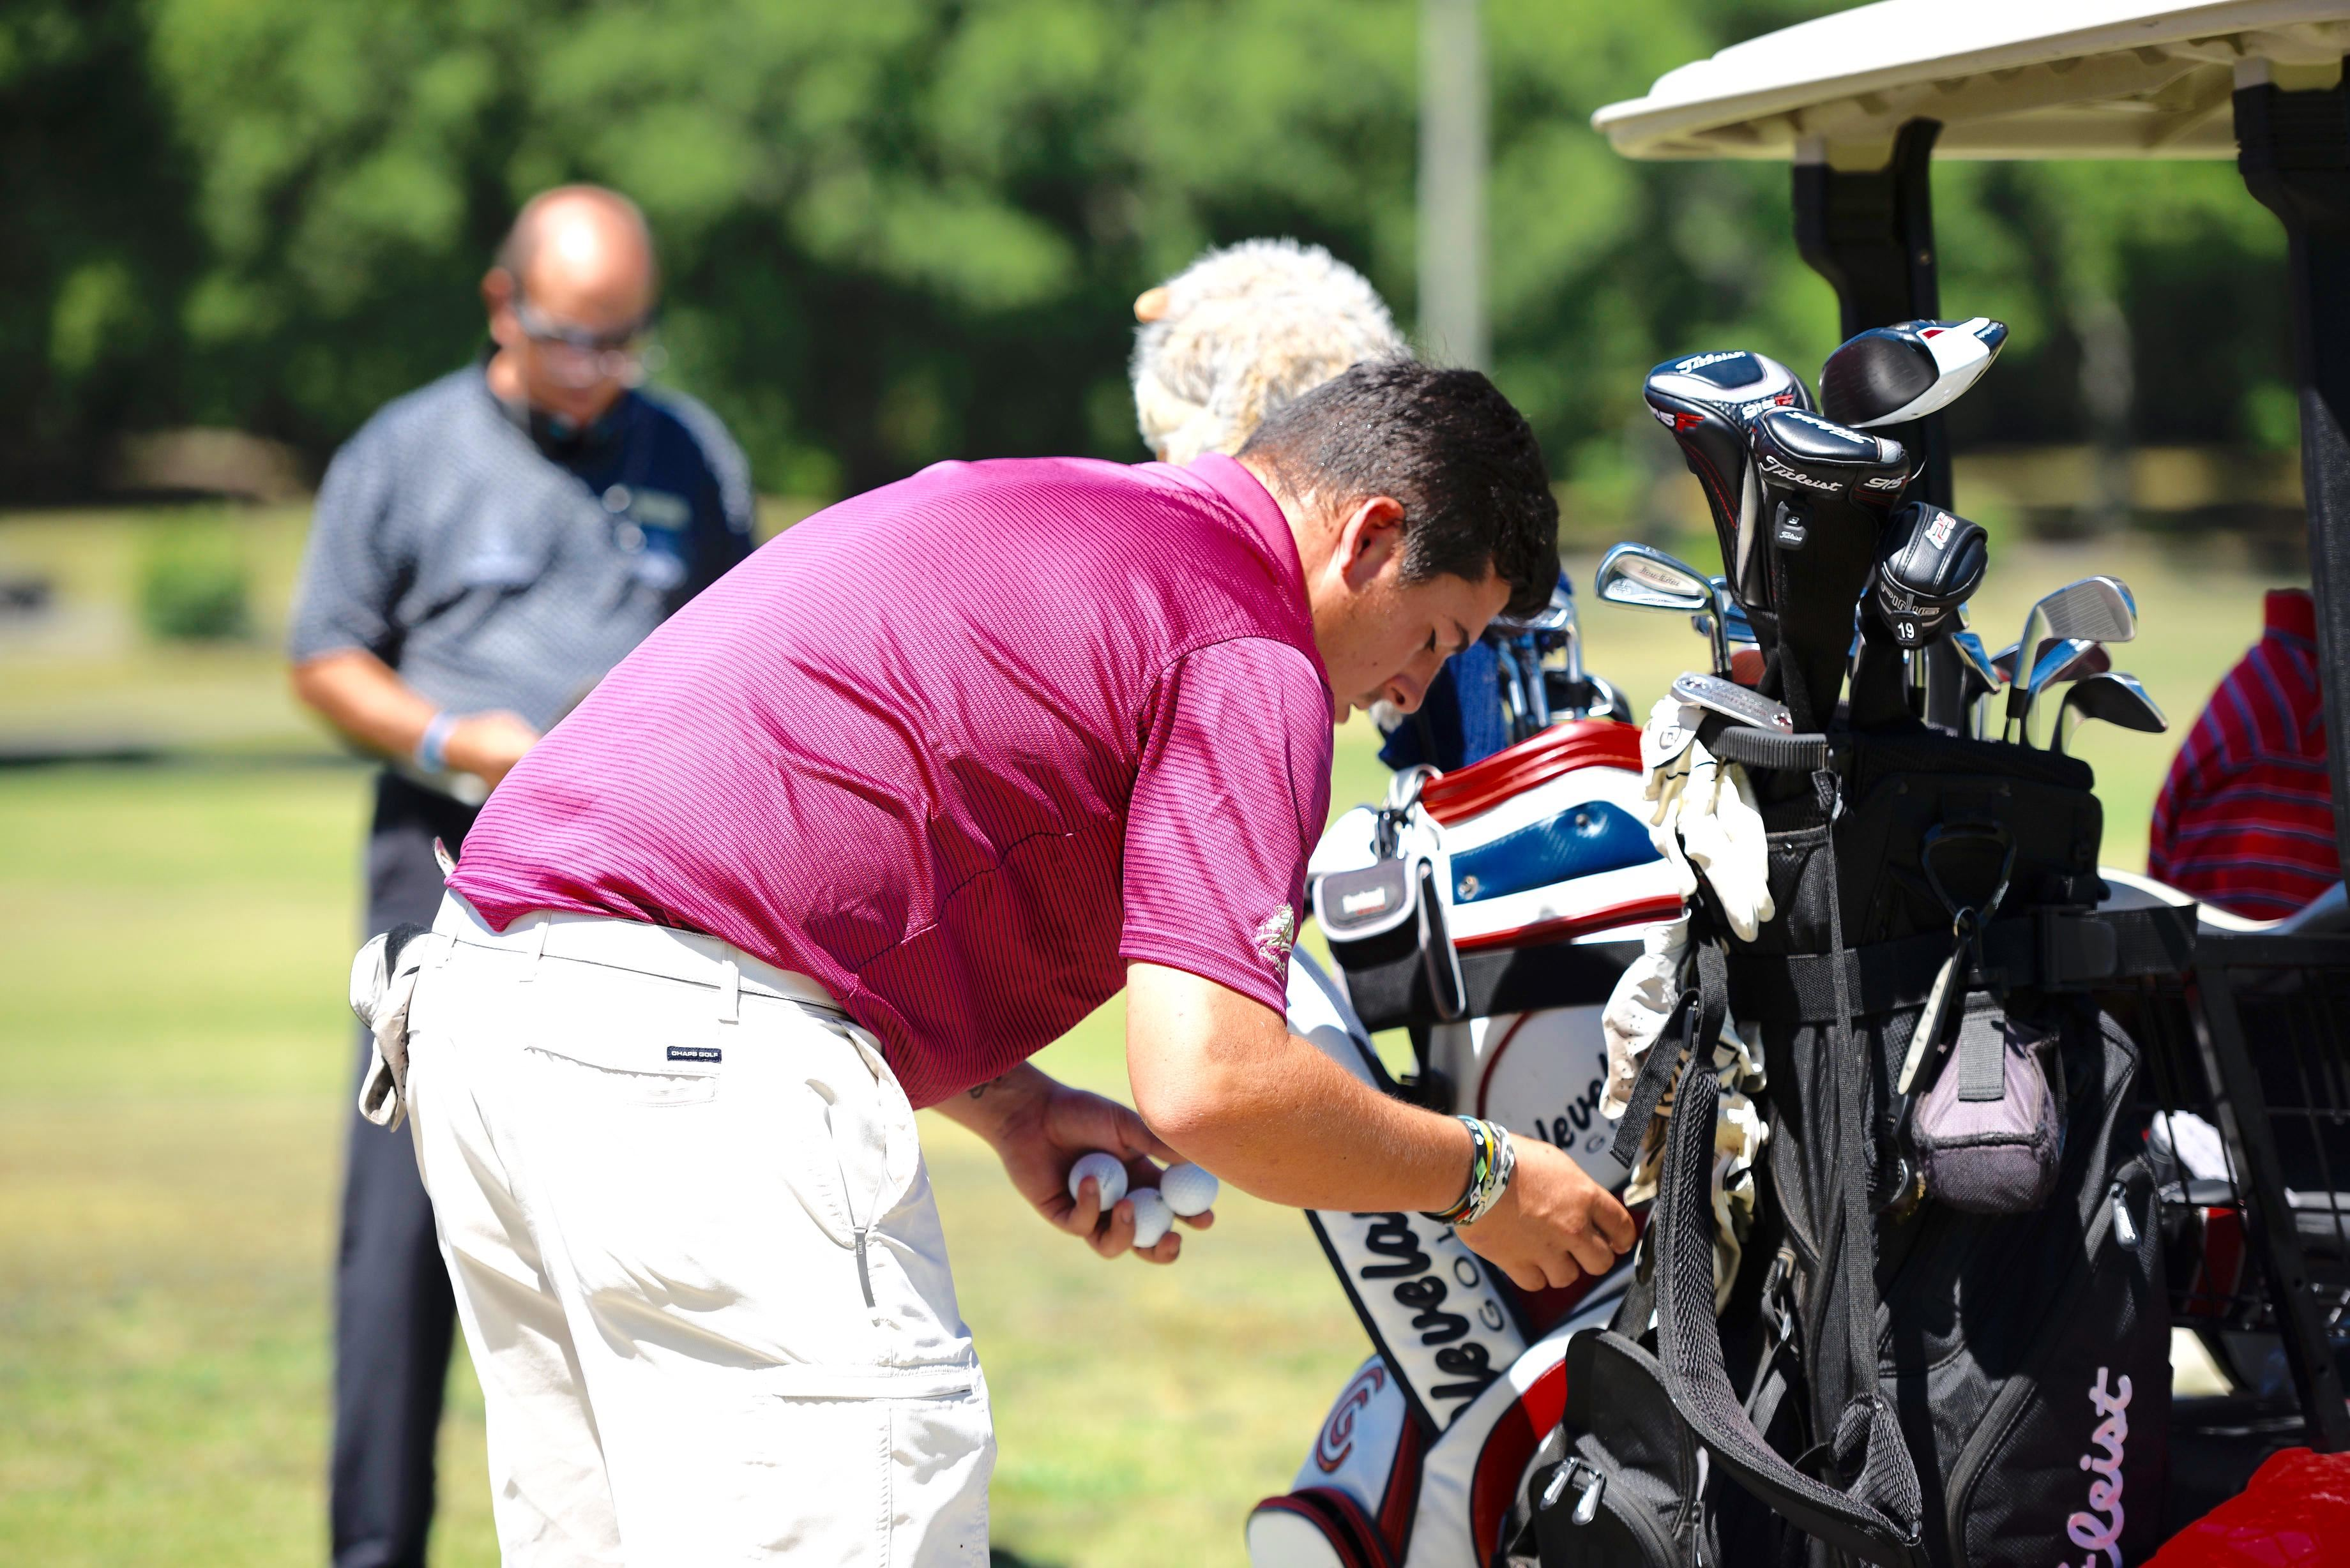 Defending Amateur Medalist Dalton Chandler Checks His Gear Before Stepping To The First Tee Friday In